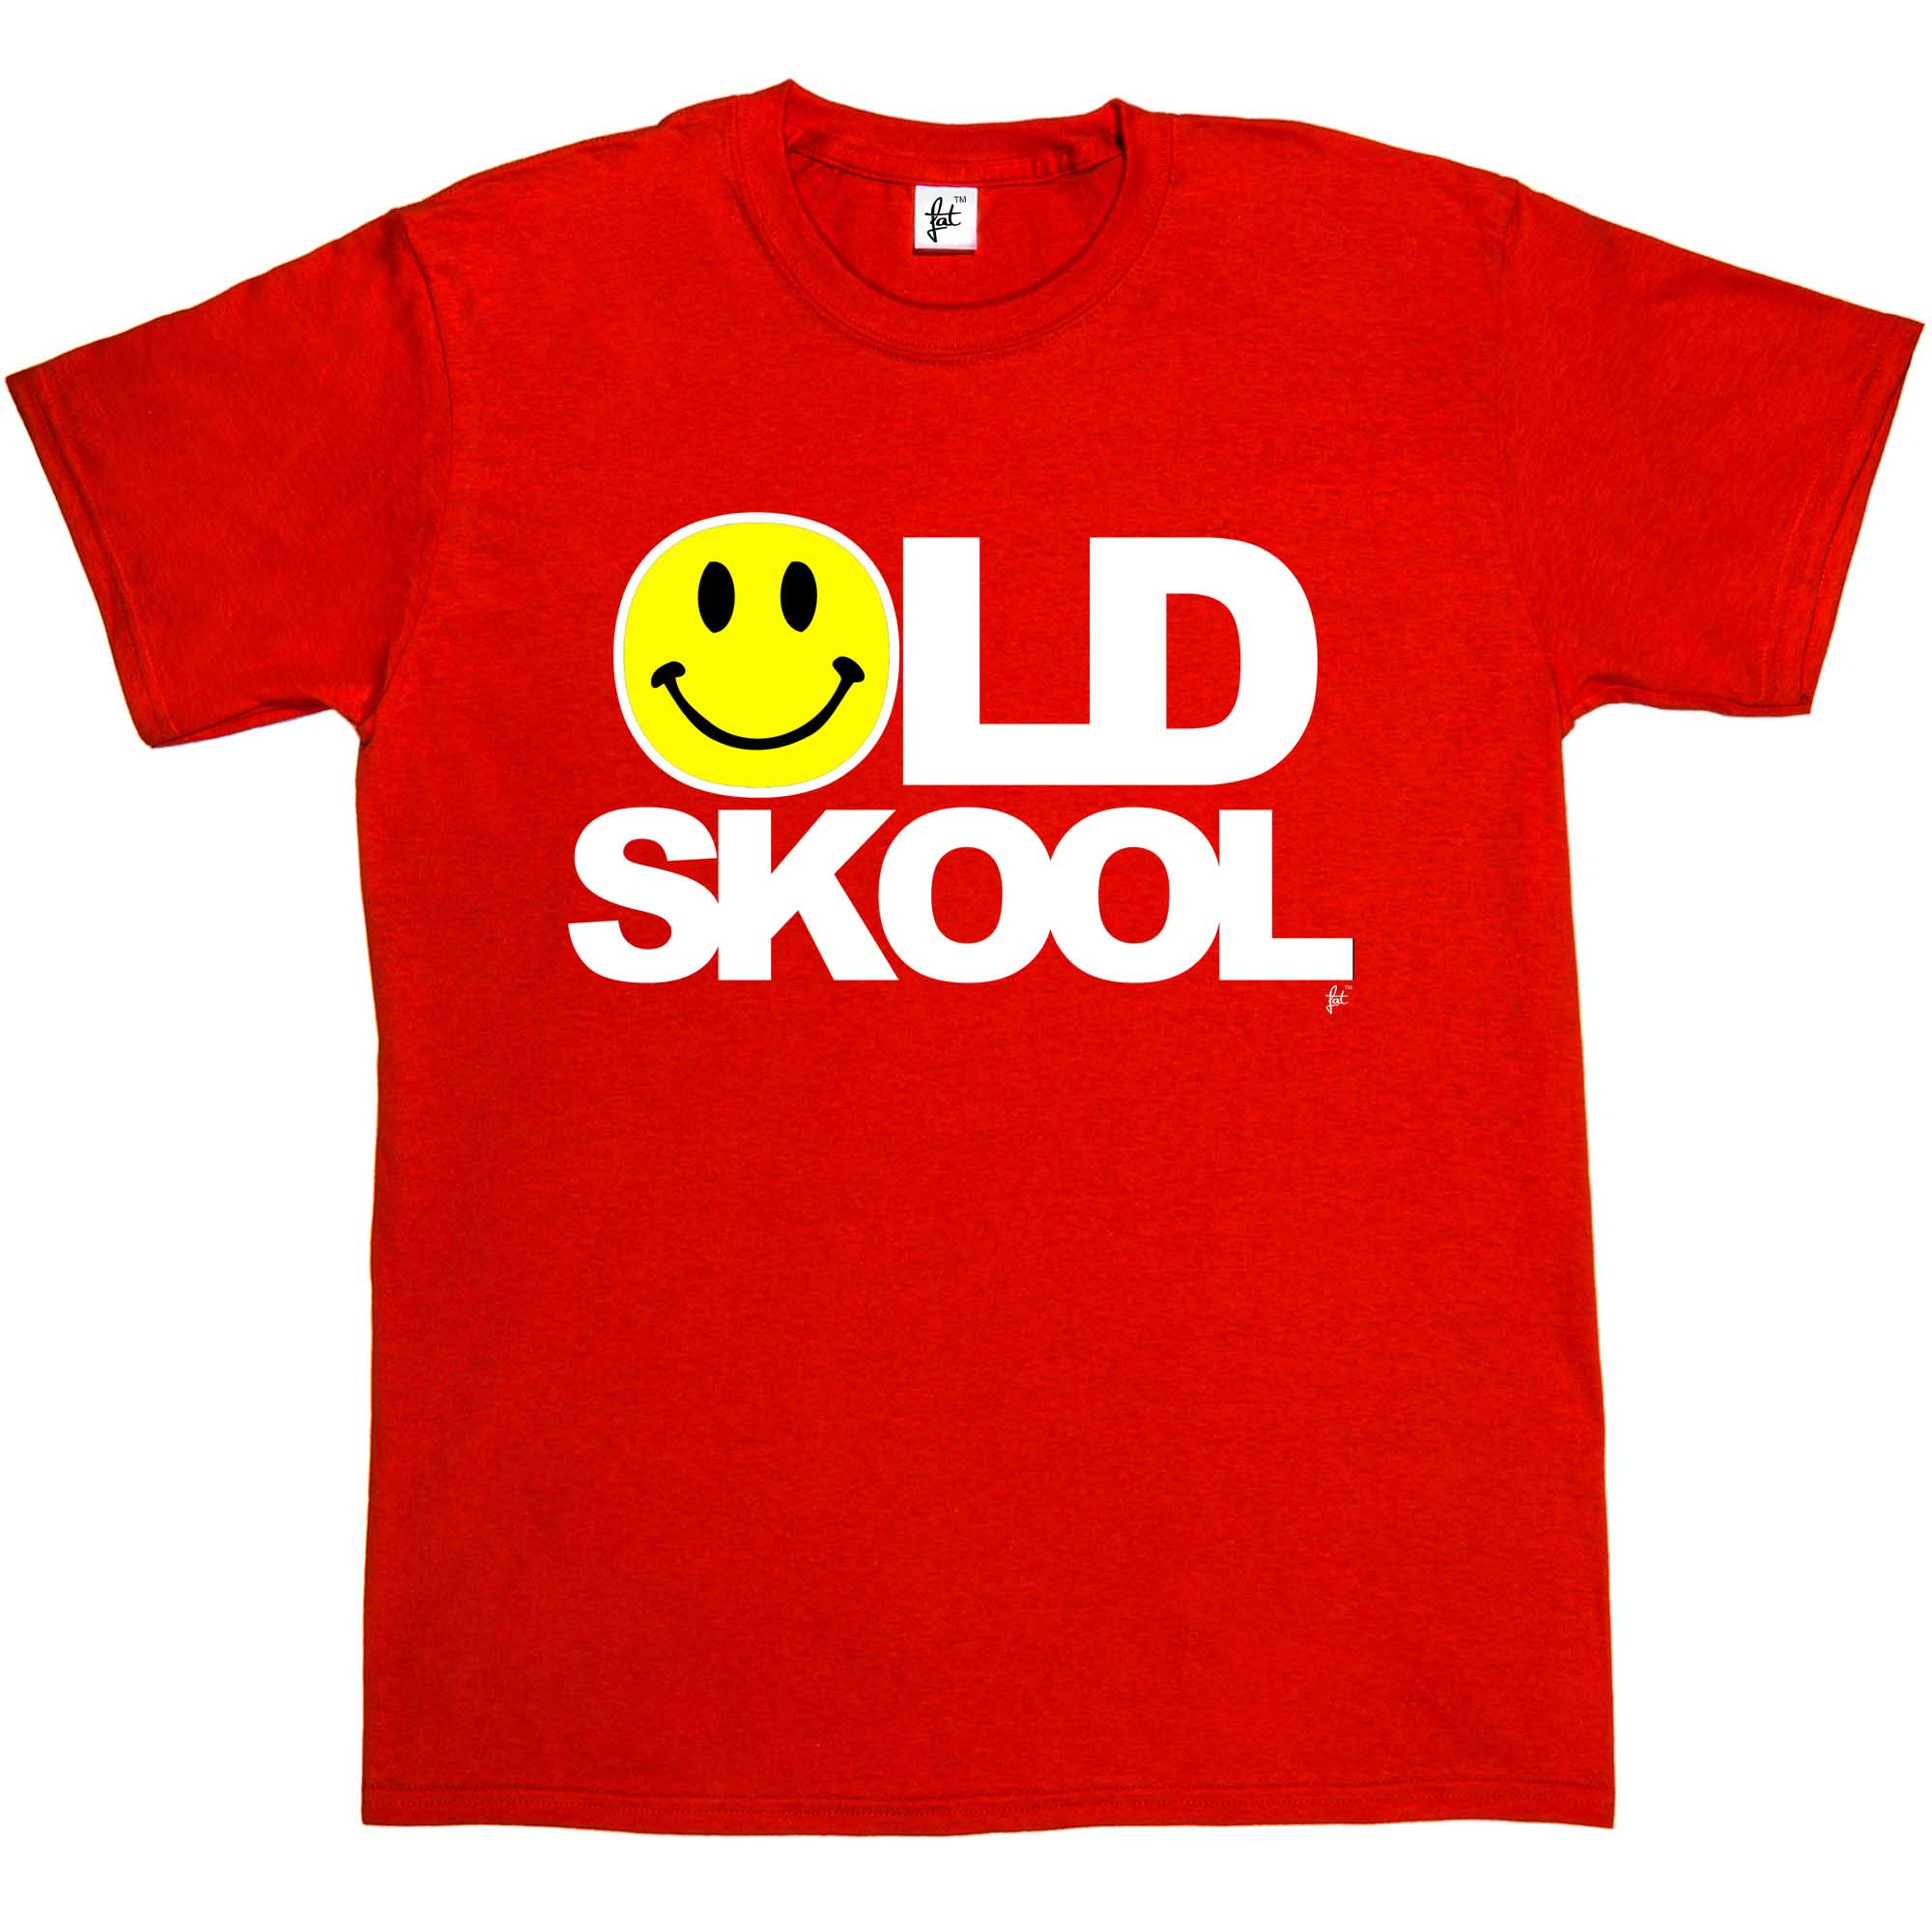 Old skool rave dj dance acid rave festival t shirt mens t for Old skool acid house